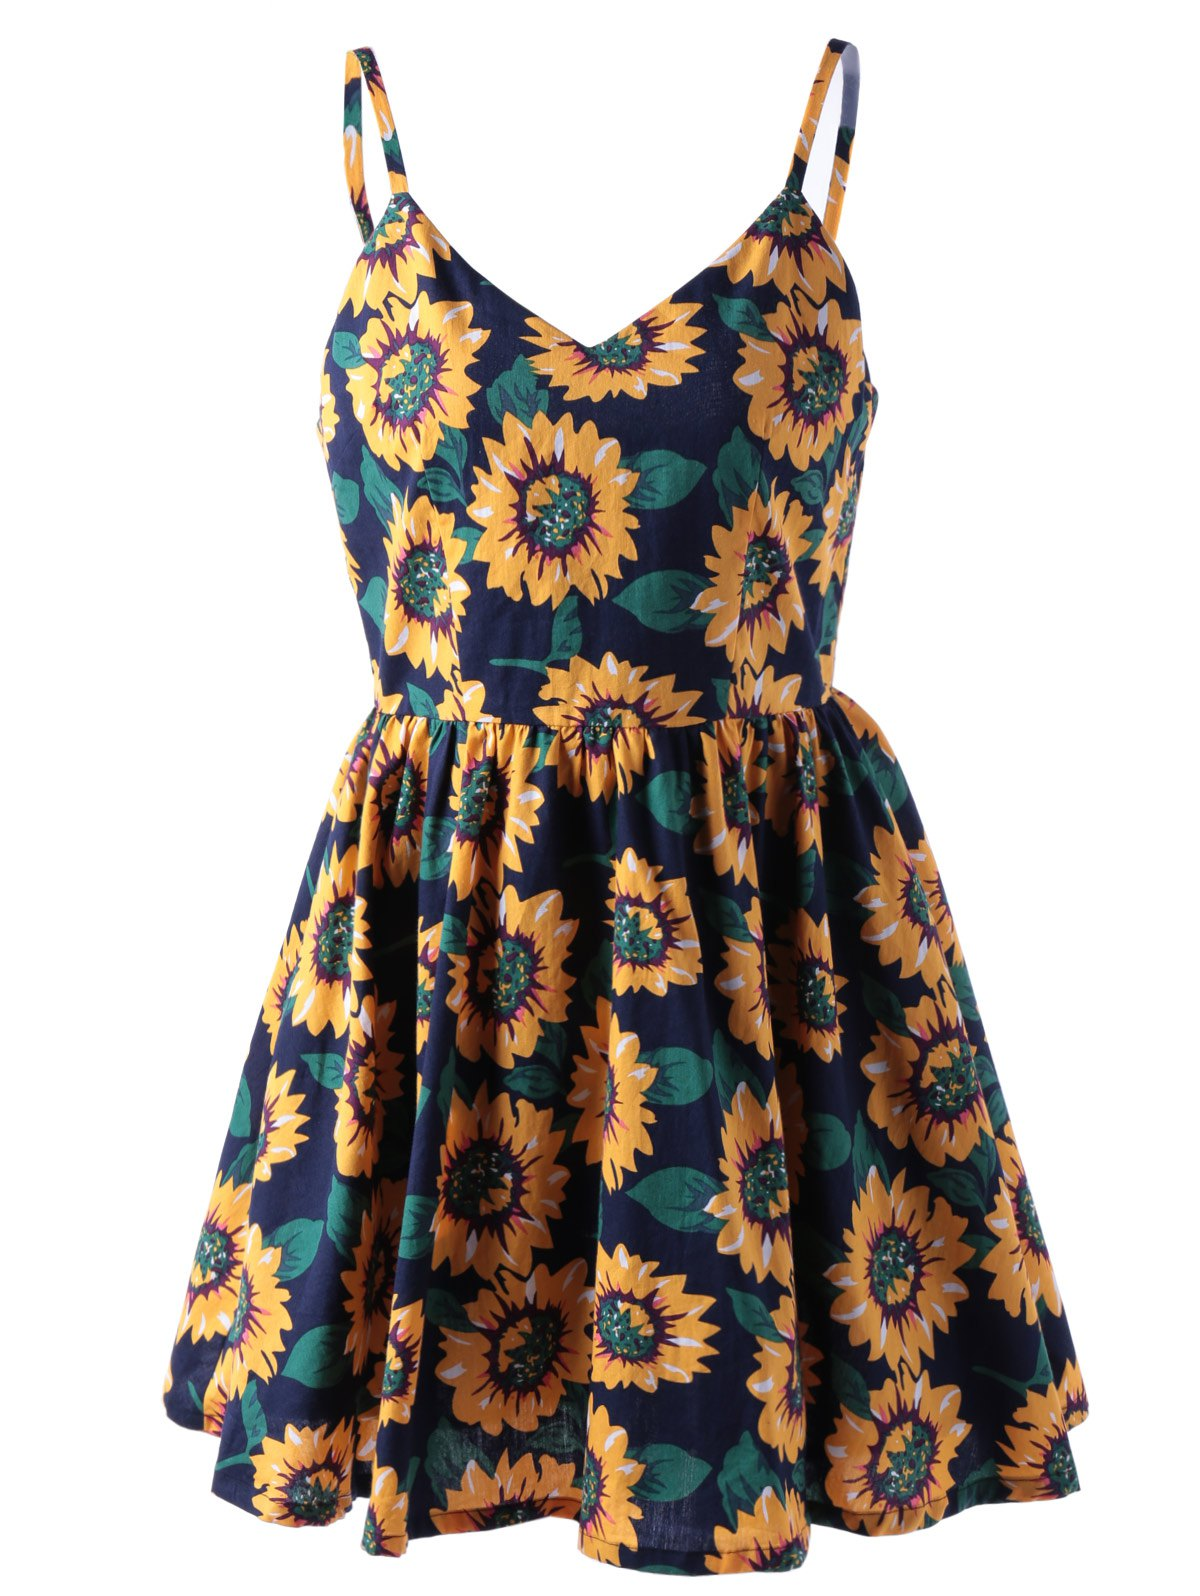 Stylish Spaghetti Straps V-Neck Print Dress For Women - COLORMIX L